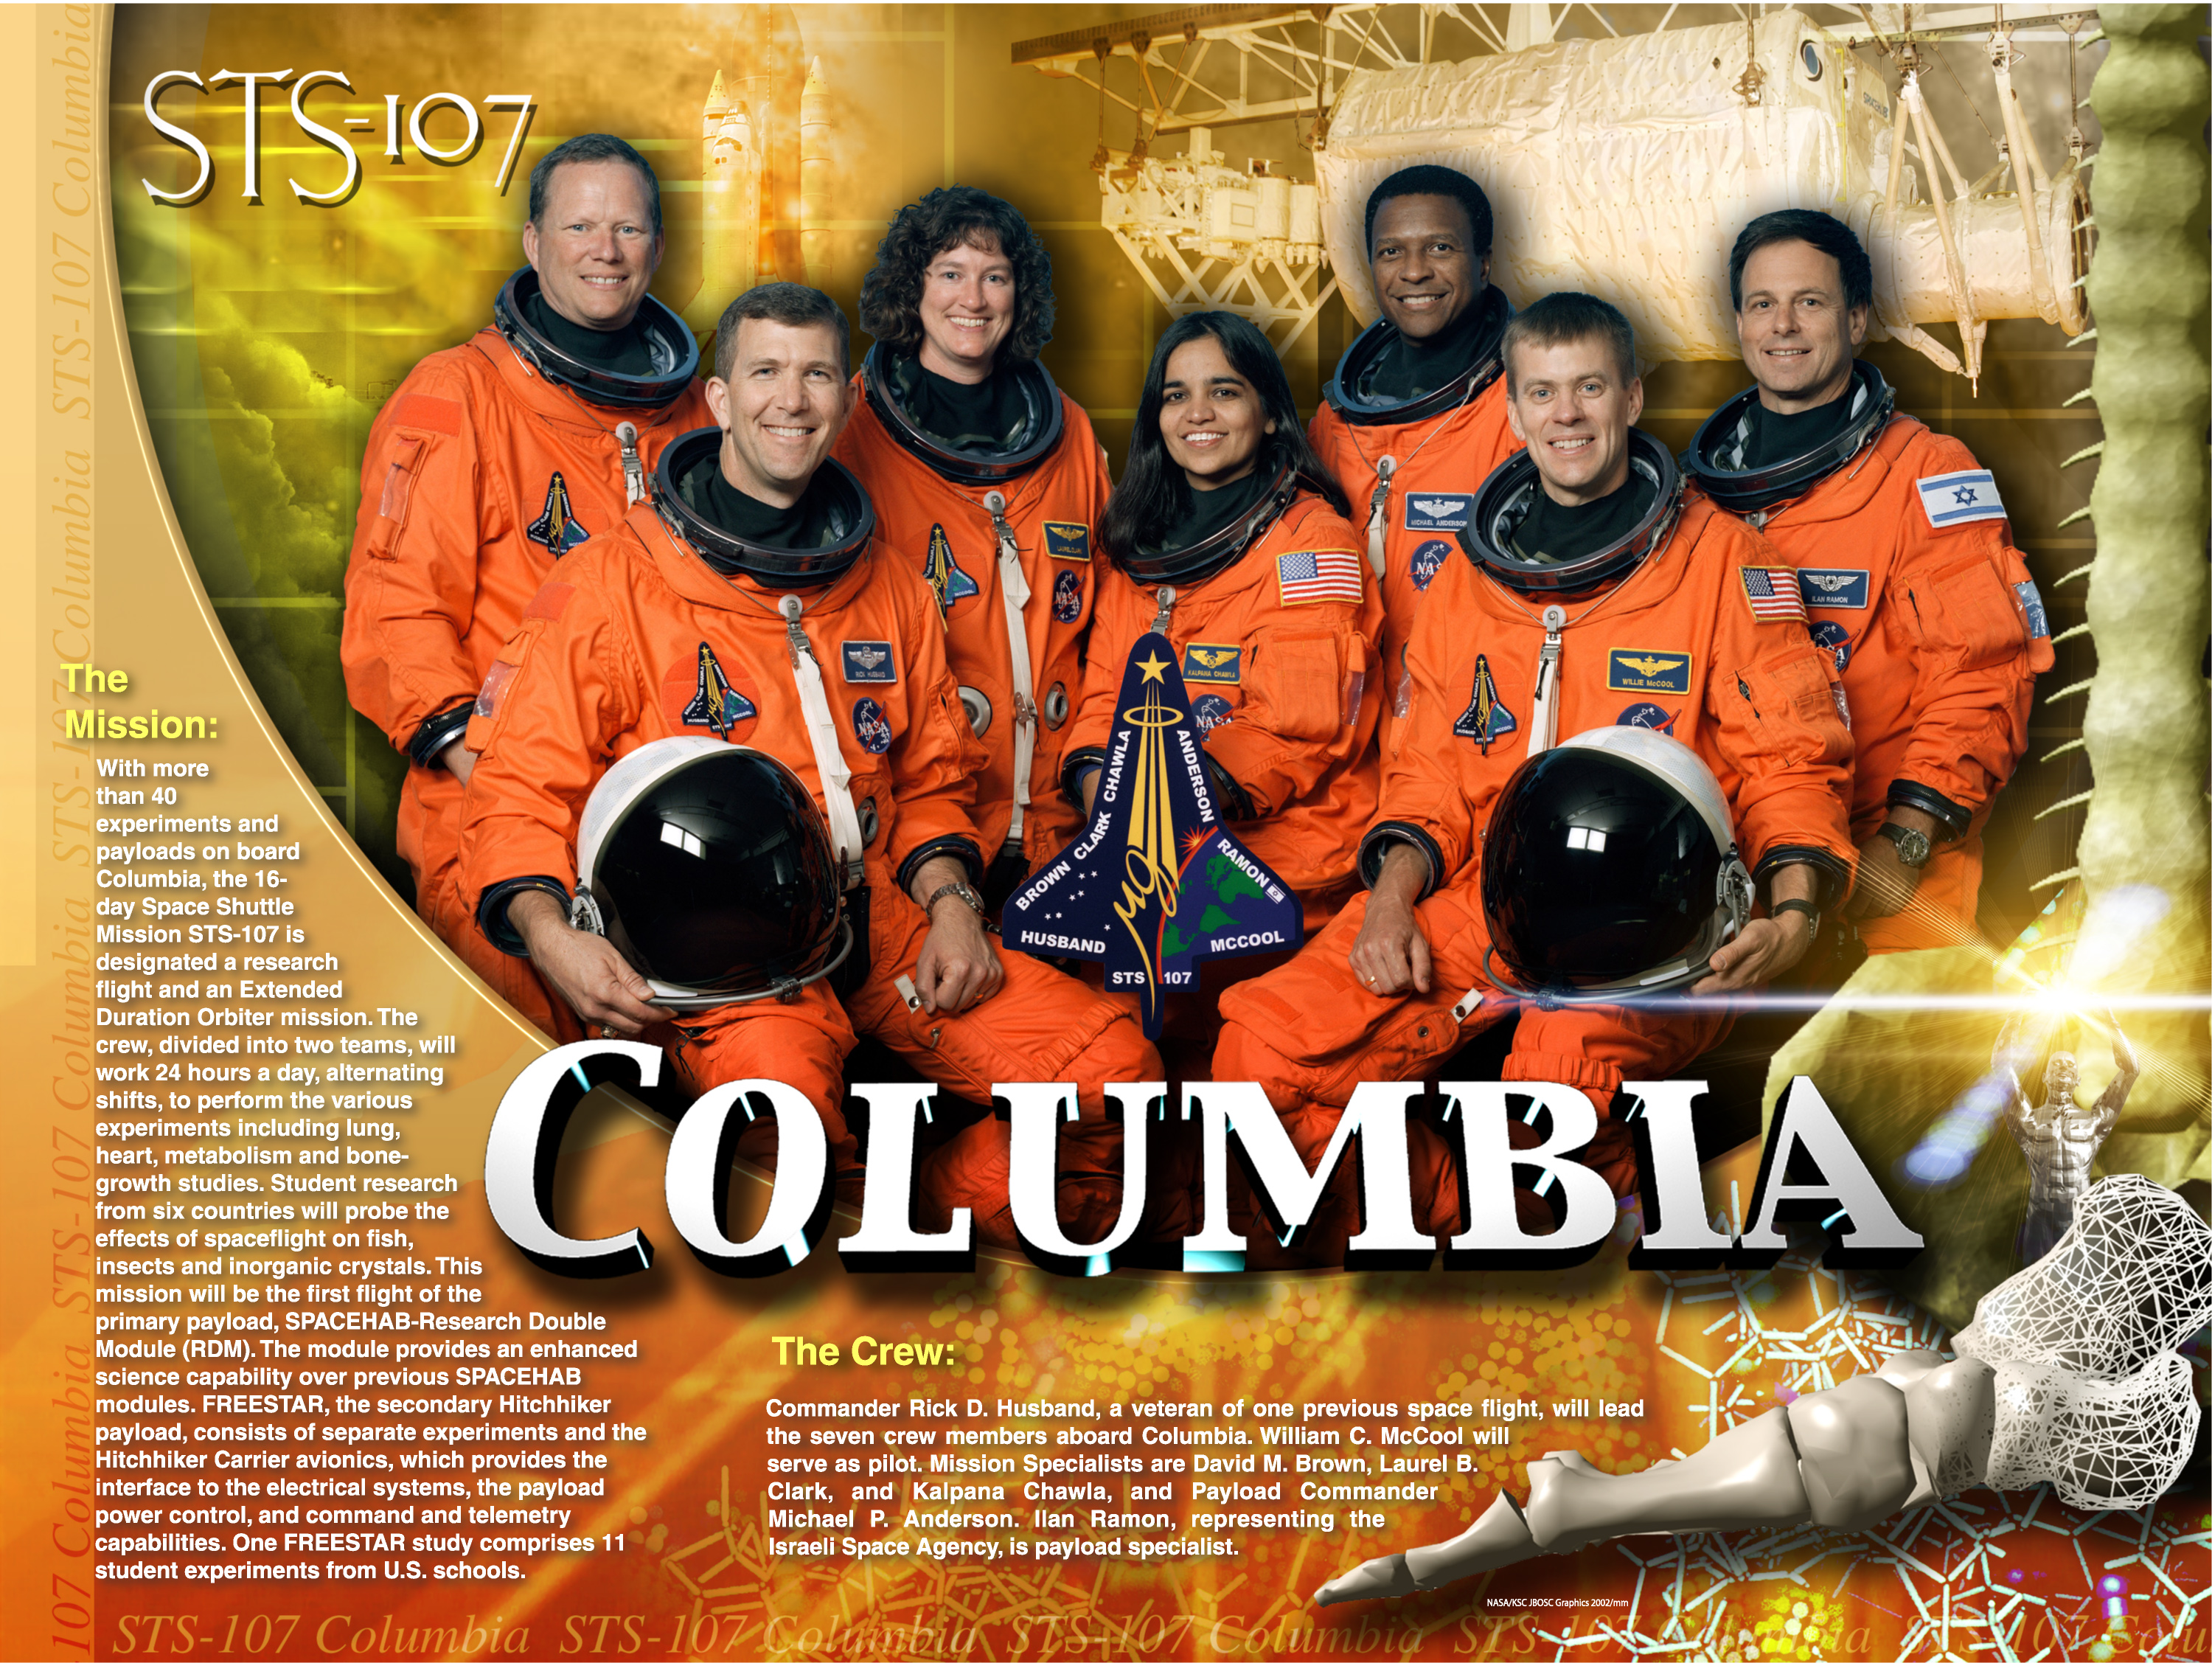 space shuttle columbia disaster crew - photo #11